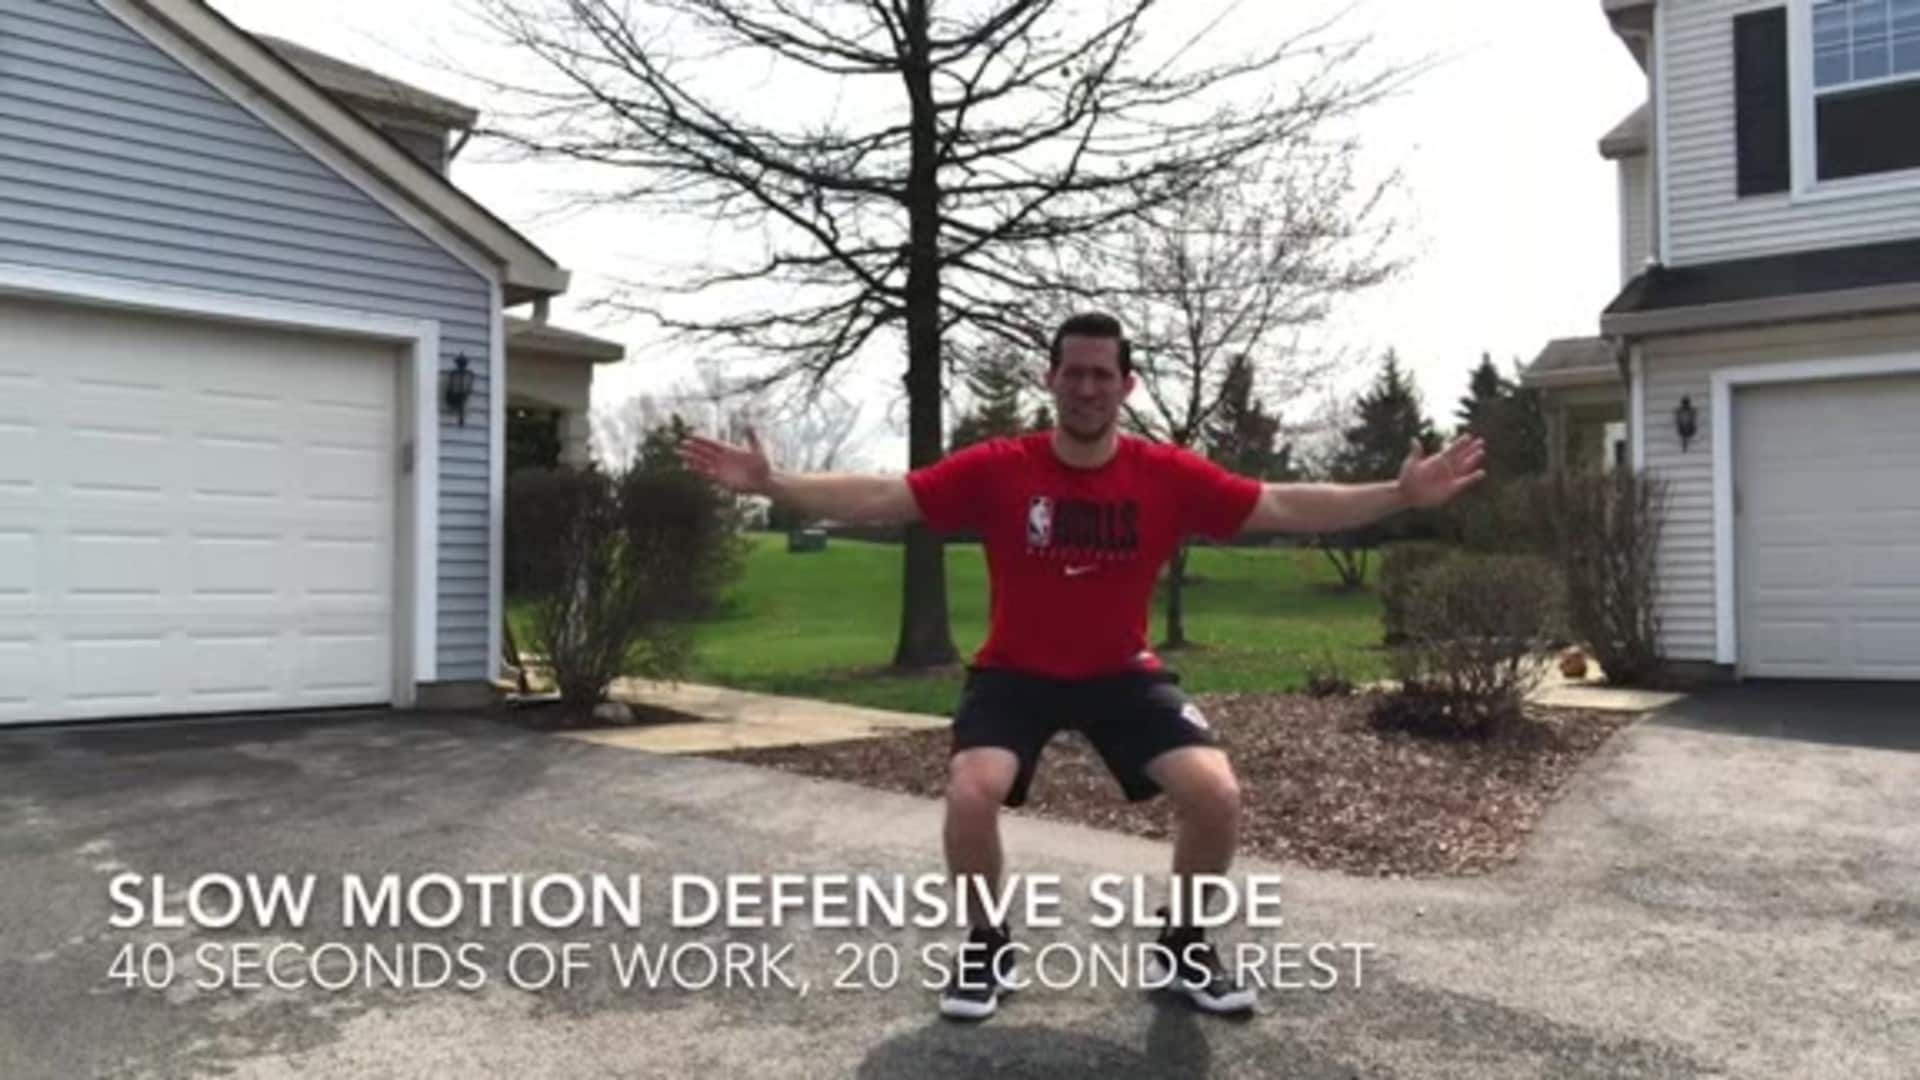 Youth Hoops Basketball Skills At Home: Defensive Workout